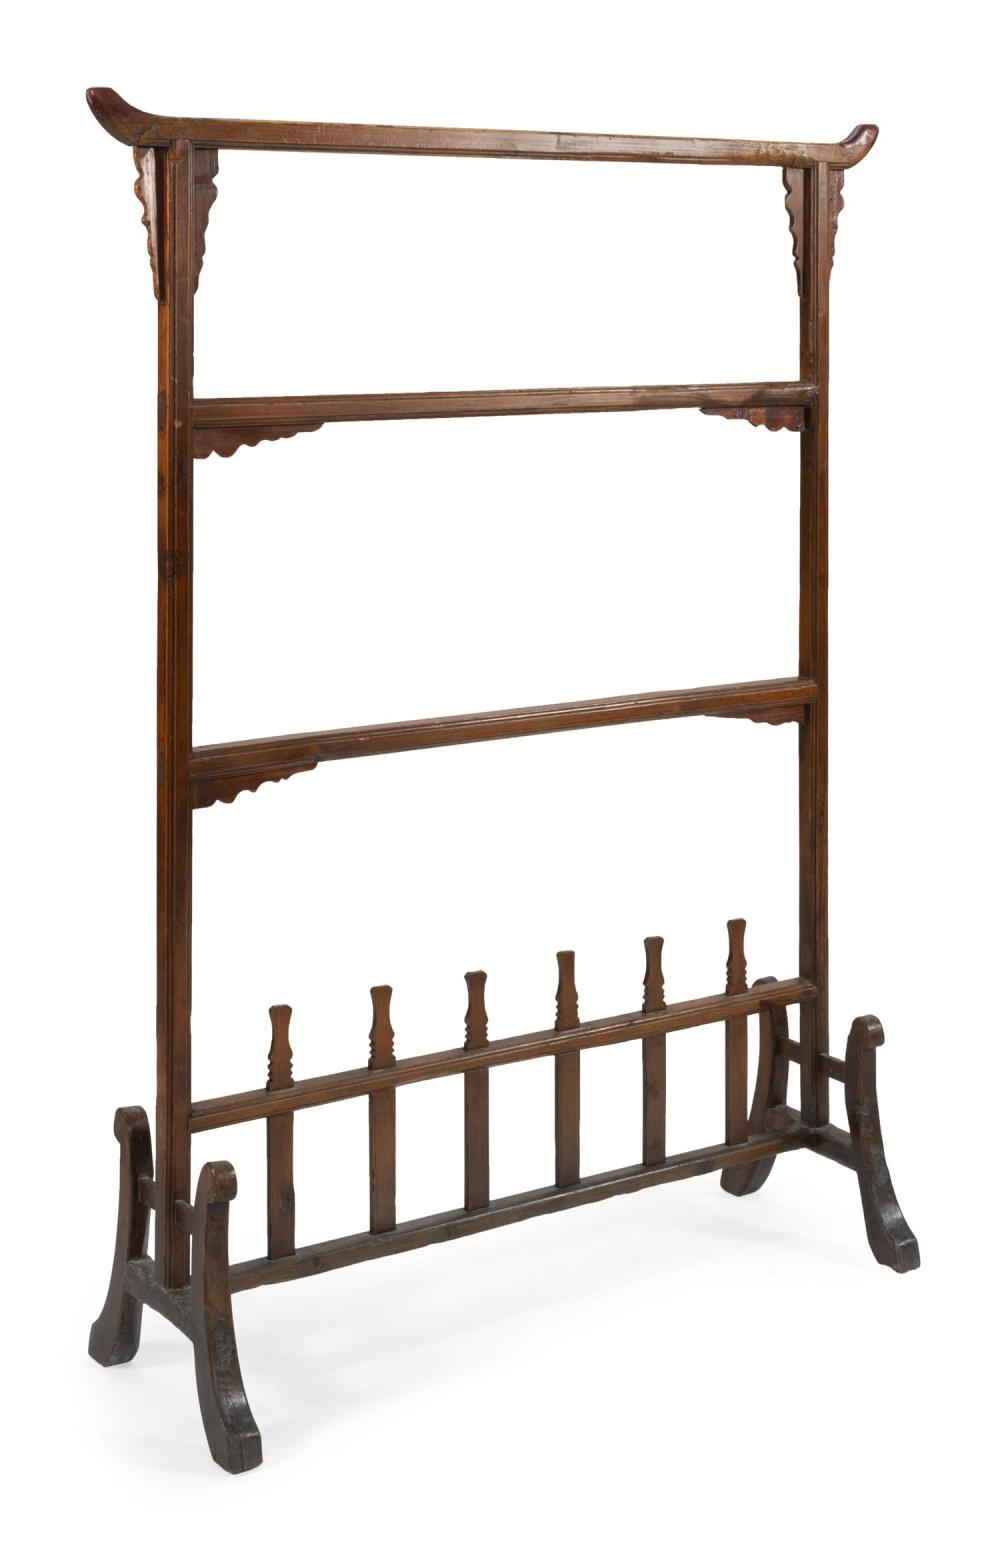 "CHINESE CARVED WOOD CLOTHES RACK Openwork lattice base with curved legs. Height 61"". Width 46.5"". Depth at base 15""."